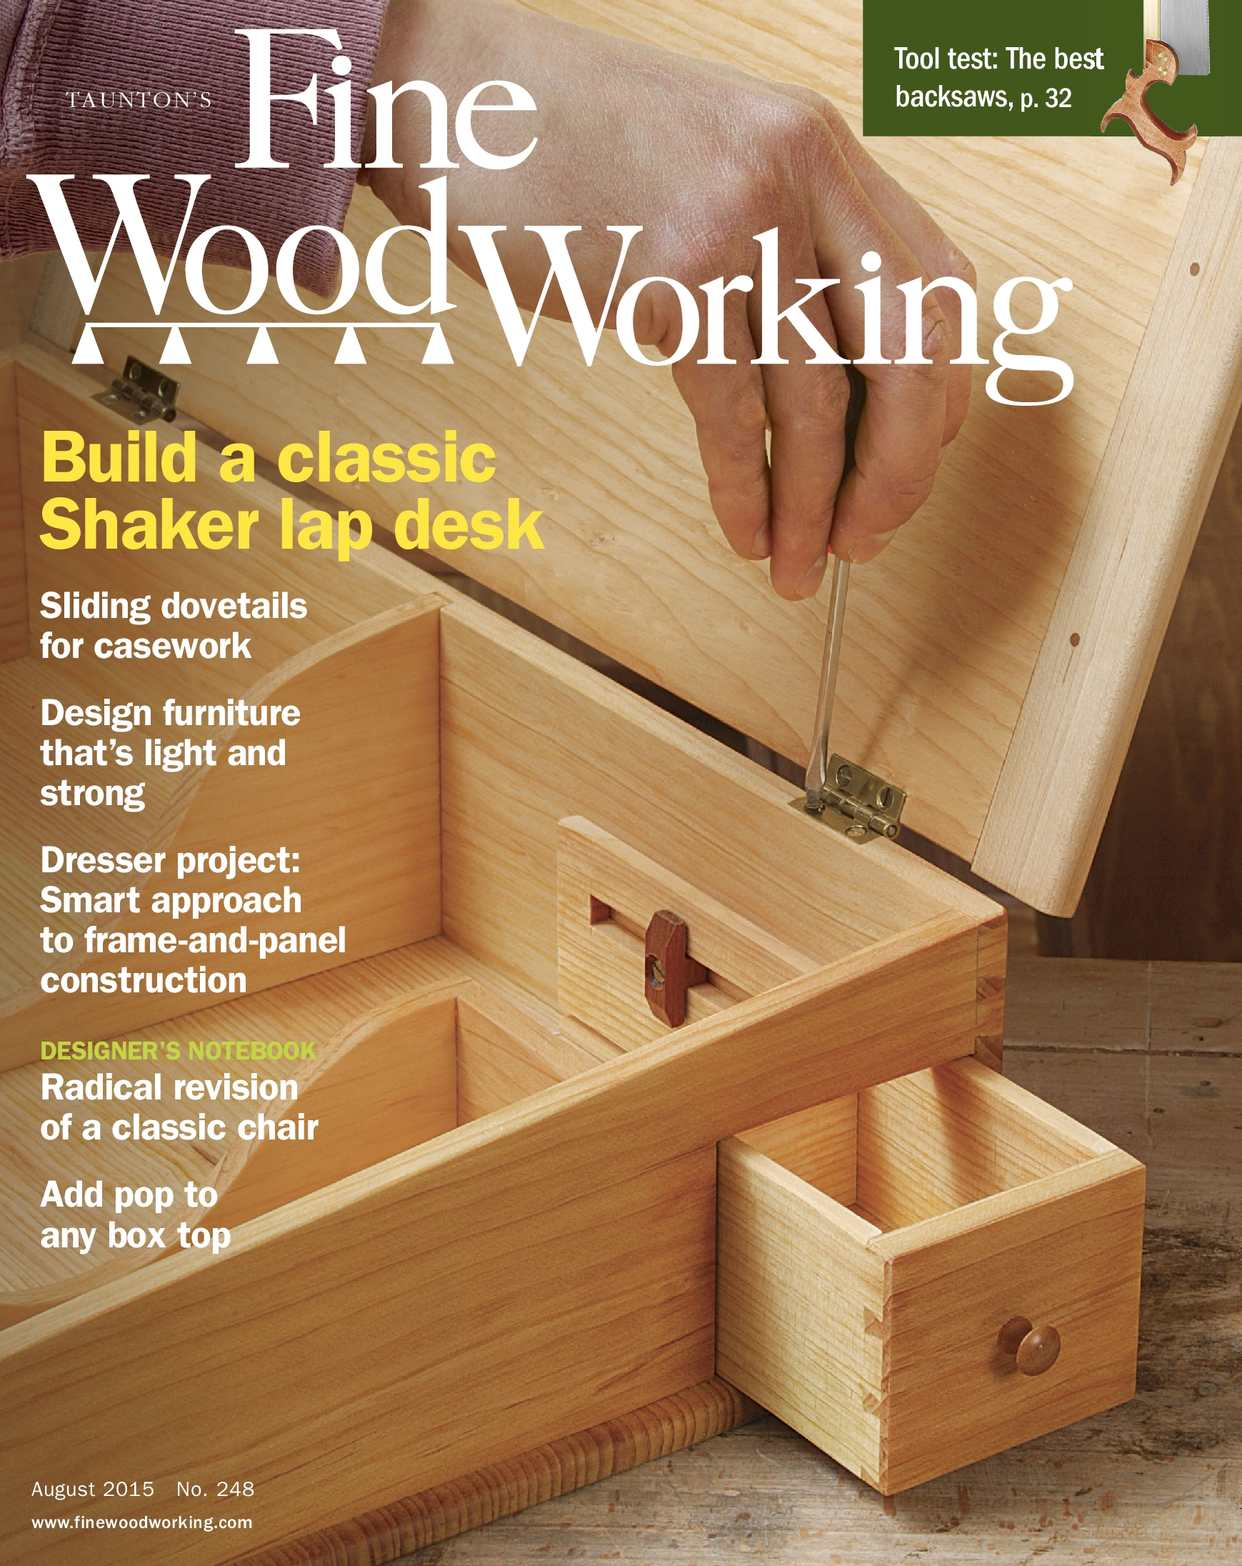 Fine Woodworking #248 Preview Issue PDF Pages